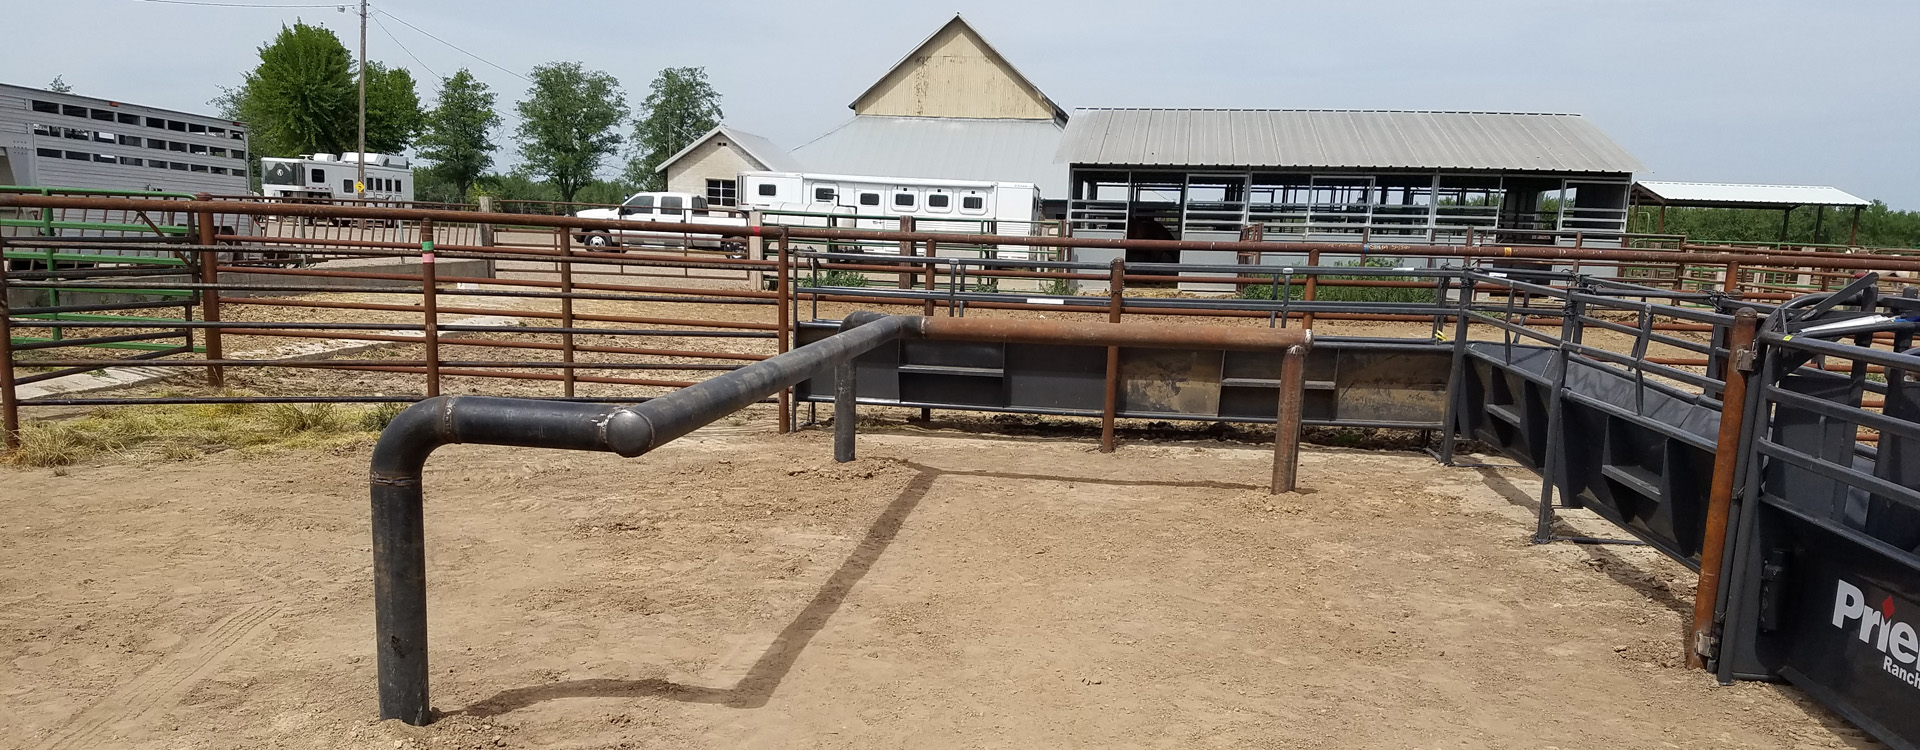 Southwest Fence Supply Ranch Fencing